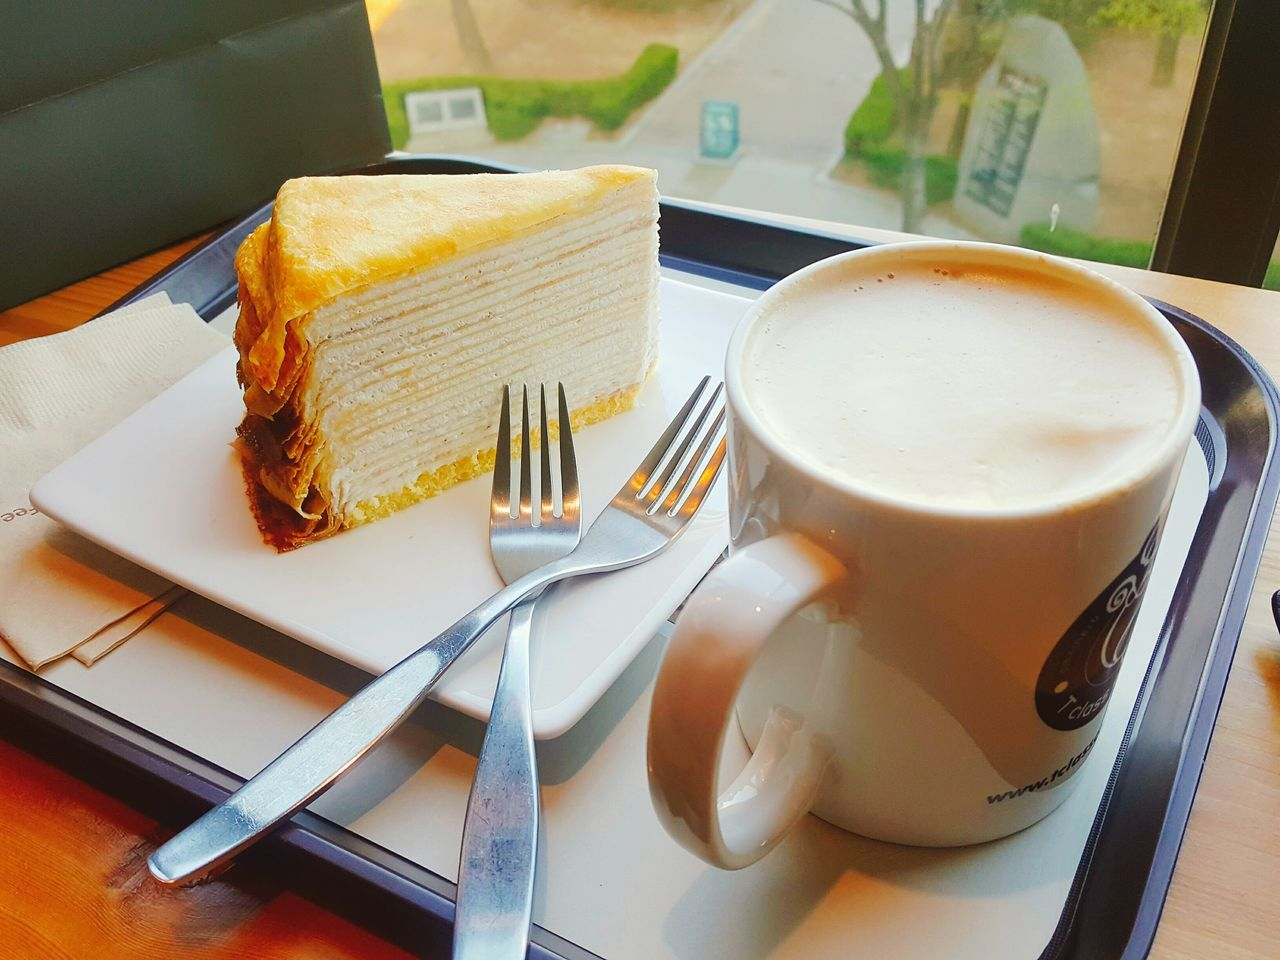 Coffee Cup Fork Coffee - Drink Cup Food And Drink Plate High Angle View Drink Table No People Indoors  Close-up Day Crape Cake Crapecake Relax